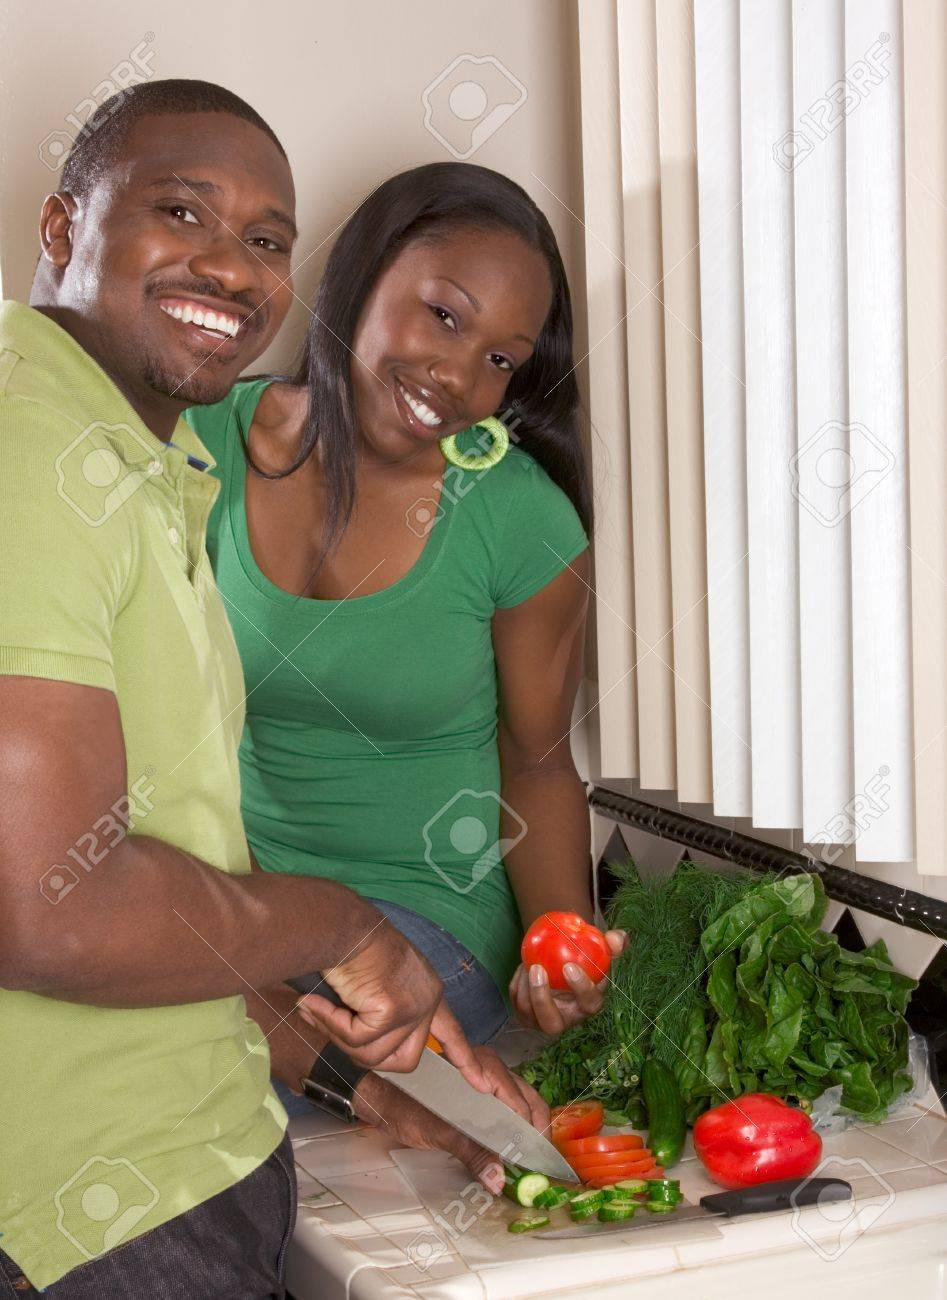 Young black African American couple preparing vegetable salad on kitchen countertop Stock Photo - 9498538